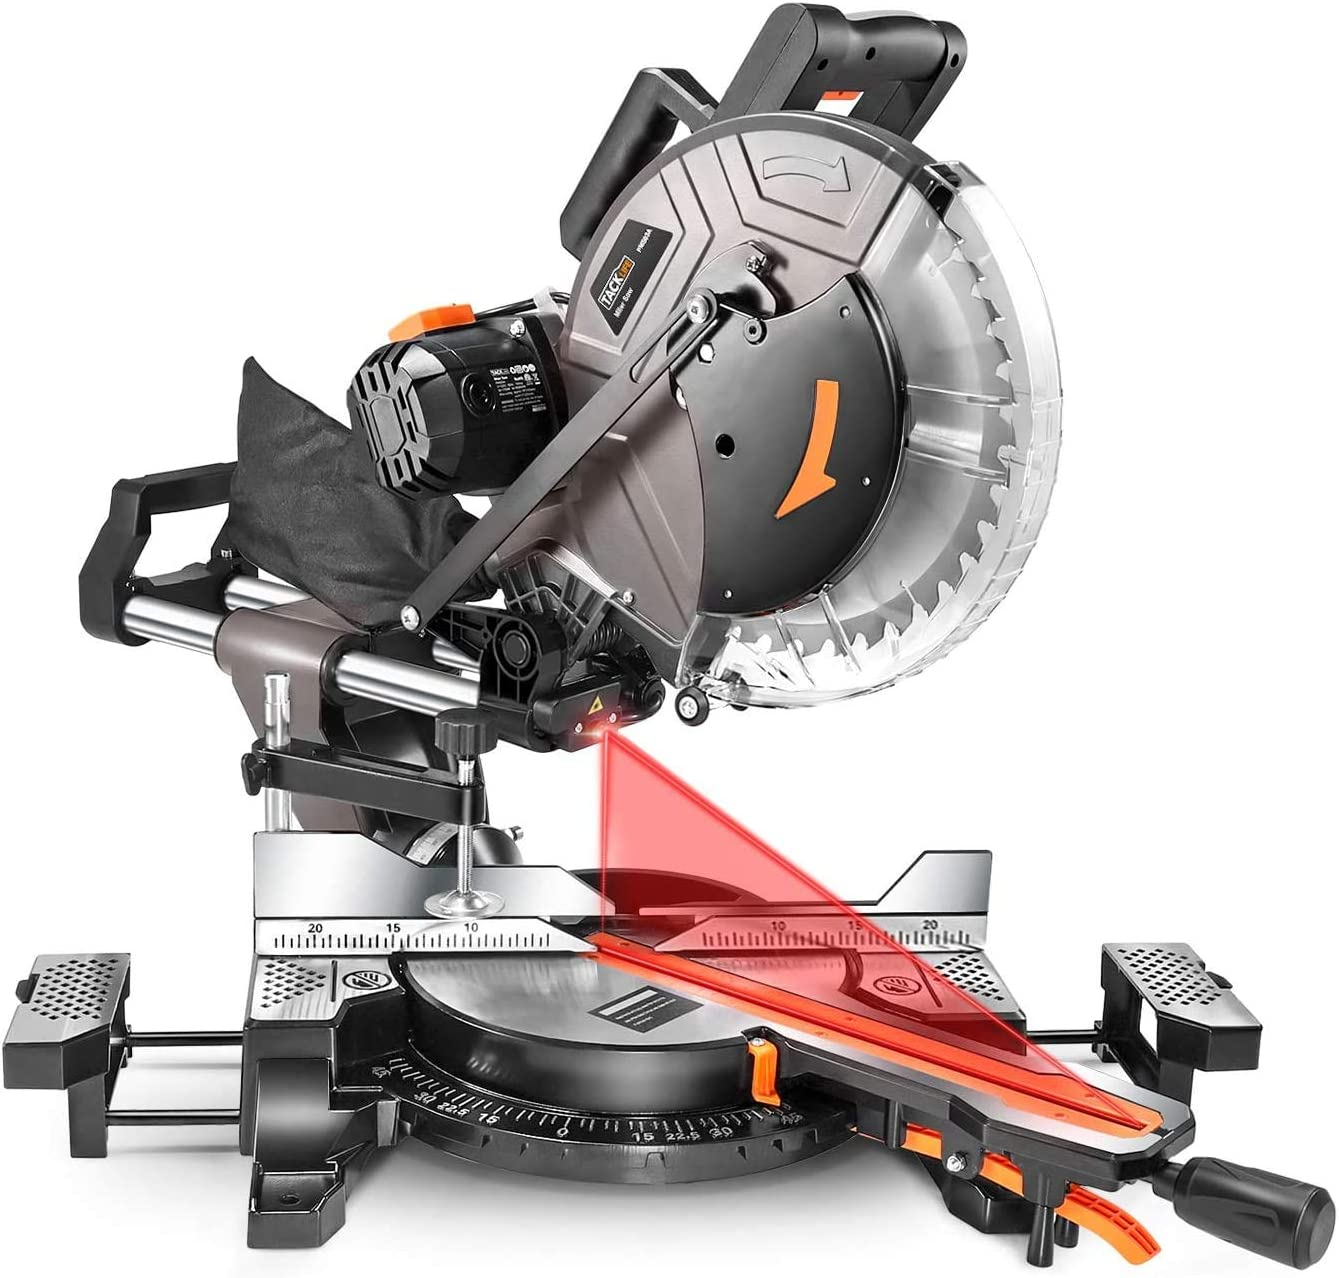 TACKLIFE Double-Bevel Sliding Compound Miter Saw